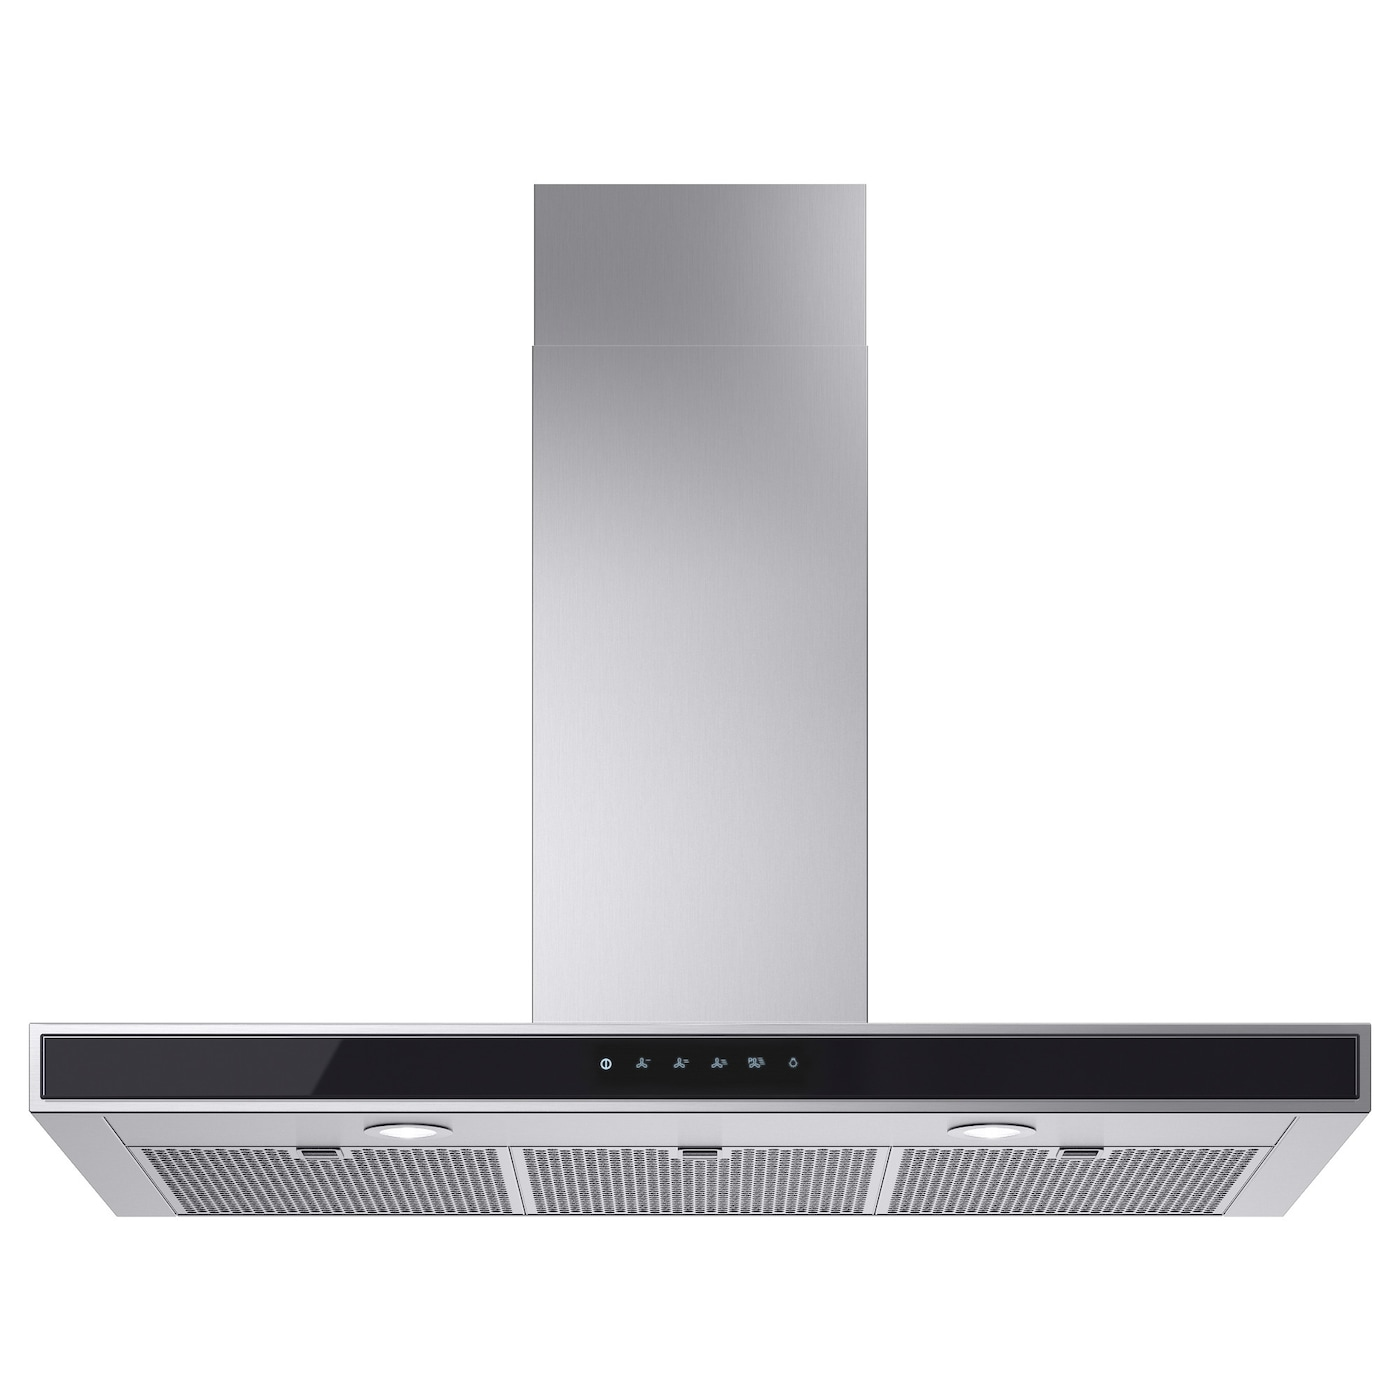 IKEA KULINARISK Wall Mounted Extractor Hood Touch Control Panel At Front  For Easy Access And Use